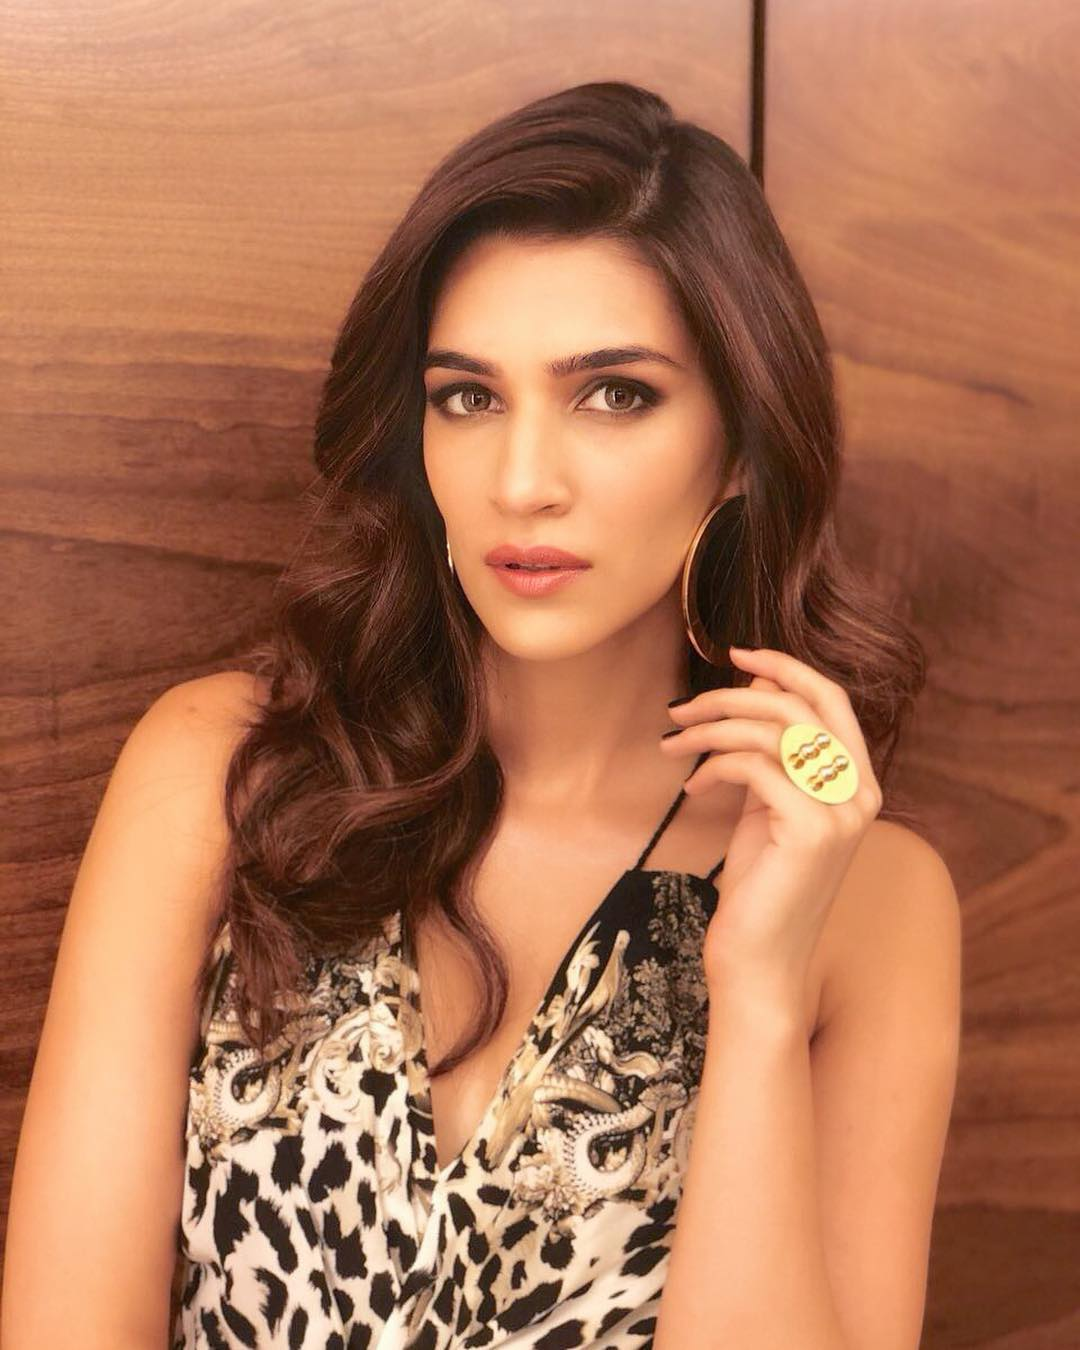 Kriti Sanon's style game is on fire and nothing says hotness better than animal print. The beauty embraces her wild side in a Roberto Cavalli